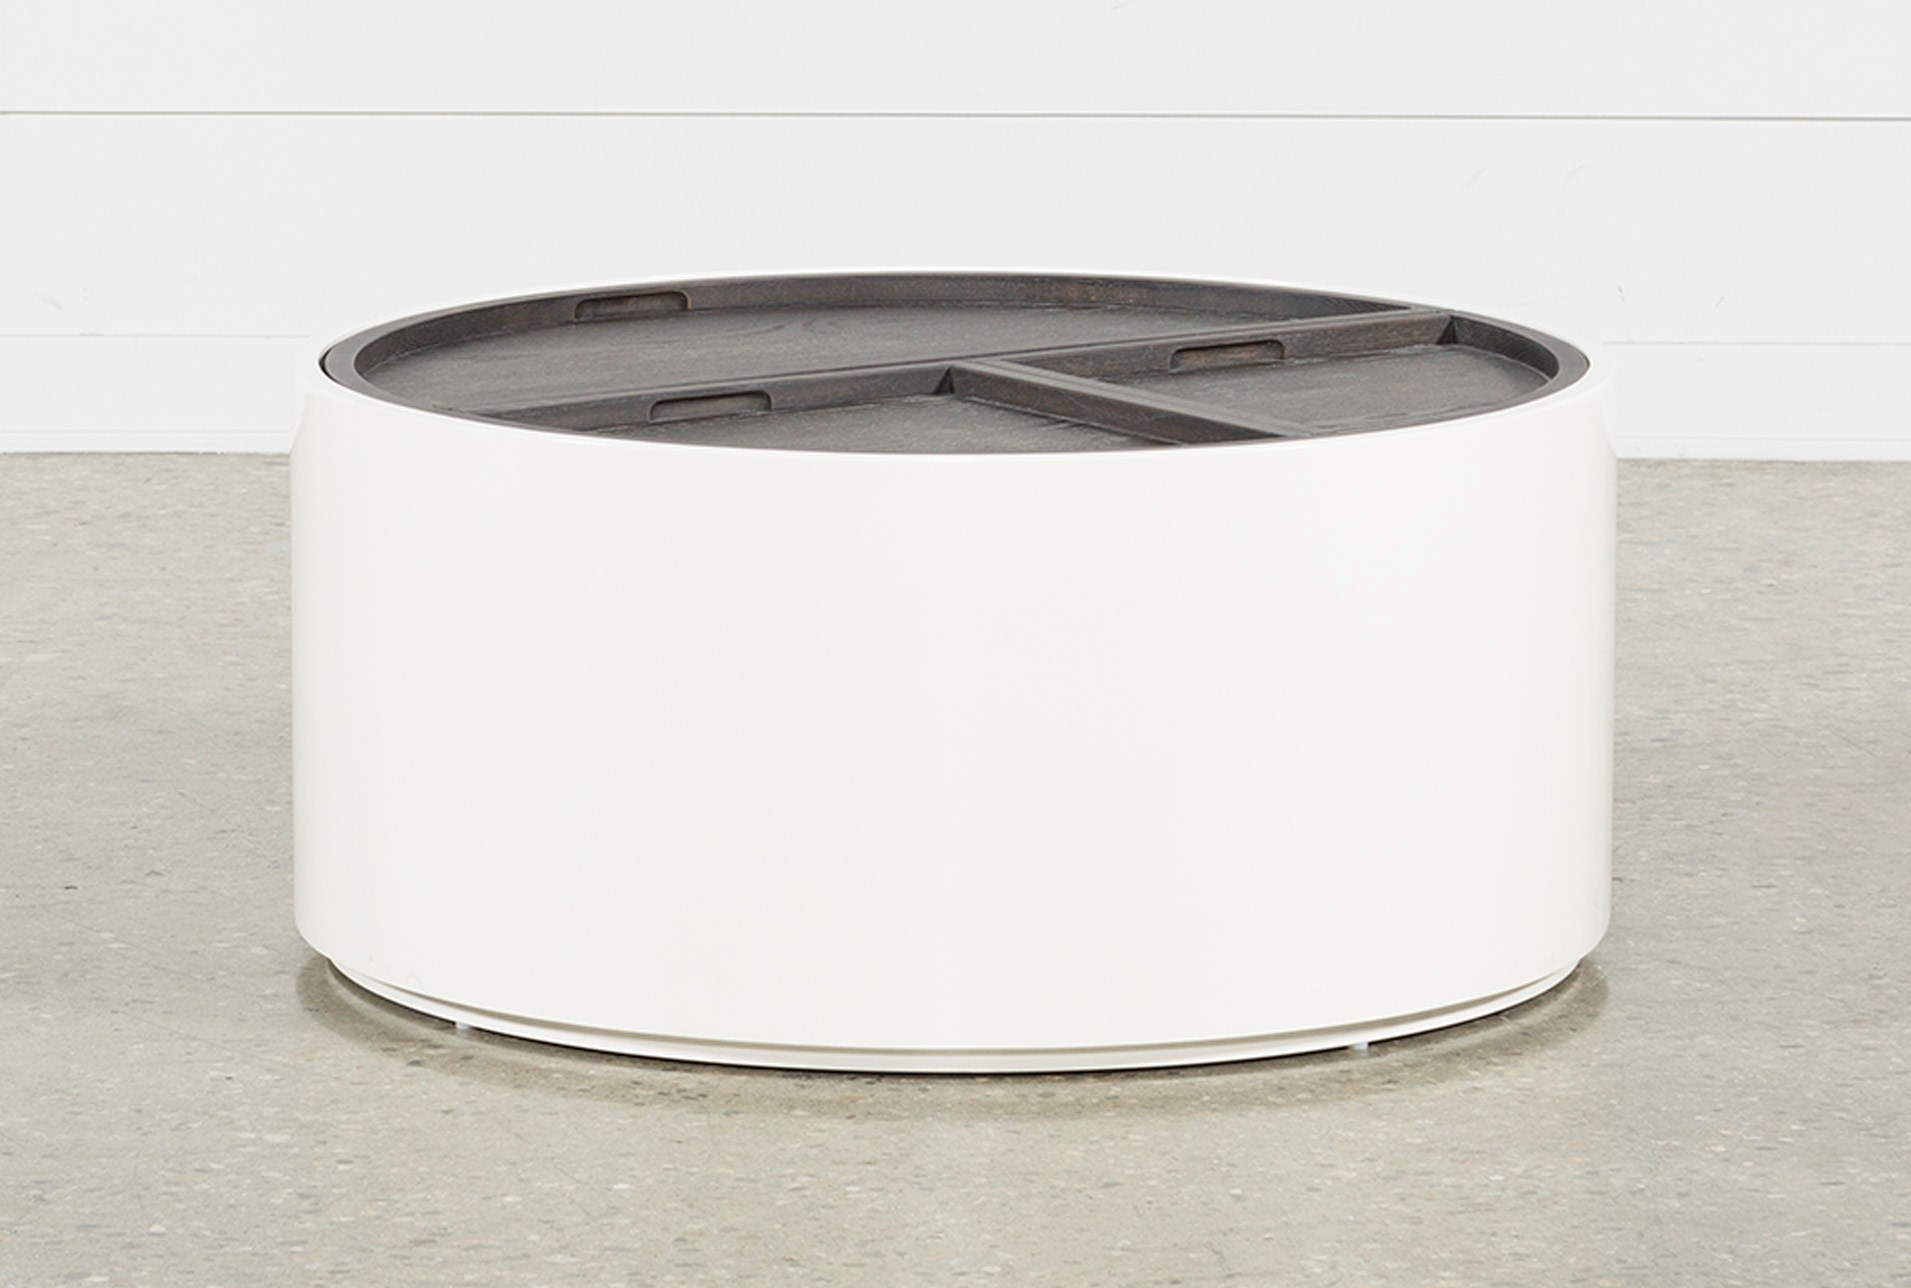 Bale rustic grey round coffee table with storage qty 1 has been successfully added to your cart